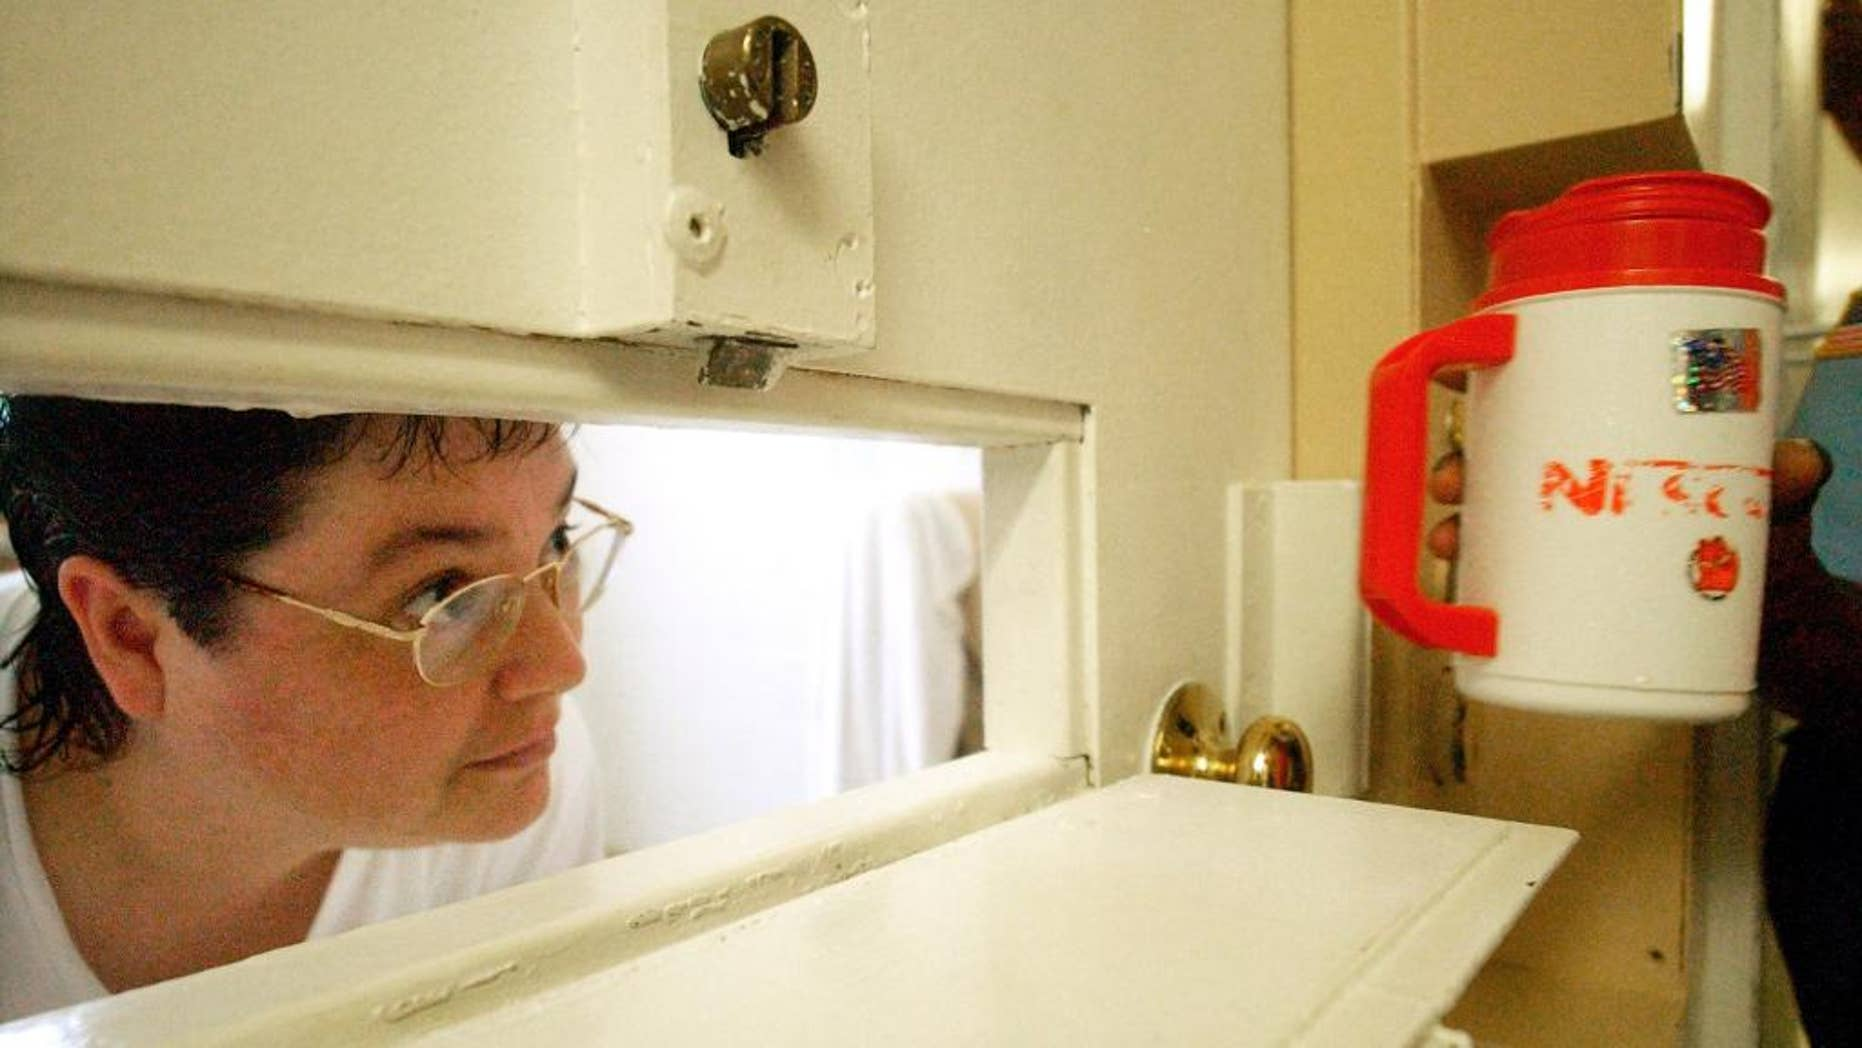 FILE -In this Tuesday, July 6, 2004, file photo, Kelly Gissendaner, the only woman on Georgia's death row, peers through the slot in her cell door as a guard brings her a cup of ice at Metro State Prison in Atlanta. Gissendaner's lawyers, on Monday, March 2, 2015, asked the Georgia State Board of Pardons and Paroles to reconsider her request to have her sentence changed to life in prison. Gissendaner, 46, is set for execution at 7 p.m. (0200 GMT) at the state prison. Gissendaner was convicted of murder in the February 1997 stabbing death of her husband. (AP Photo/Atlanta Journal-Constitution, Bita Honarvar, File)